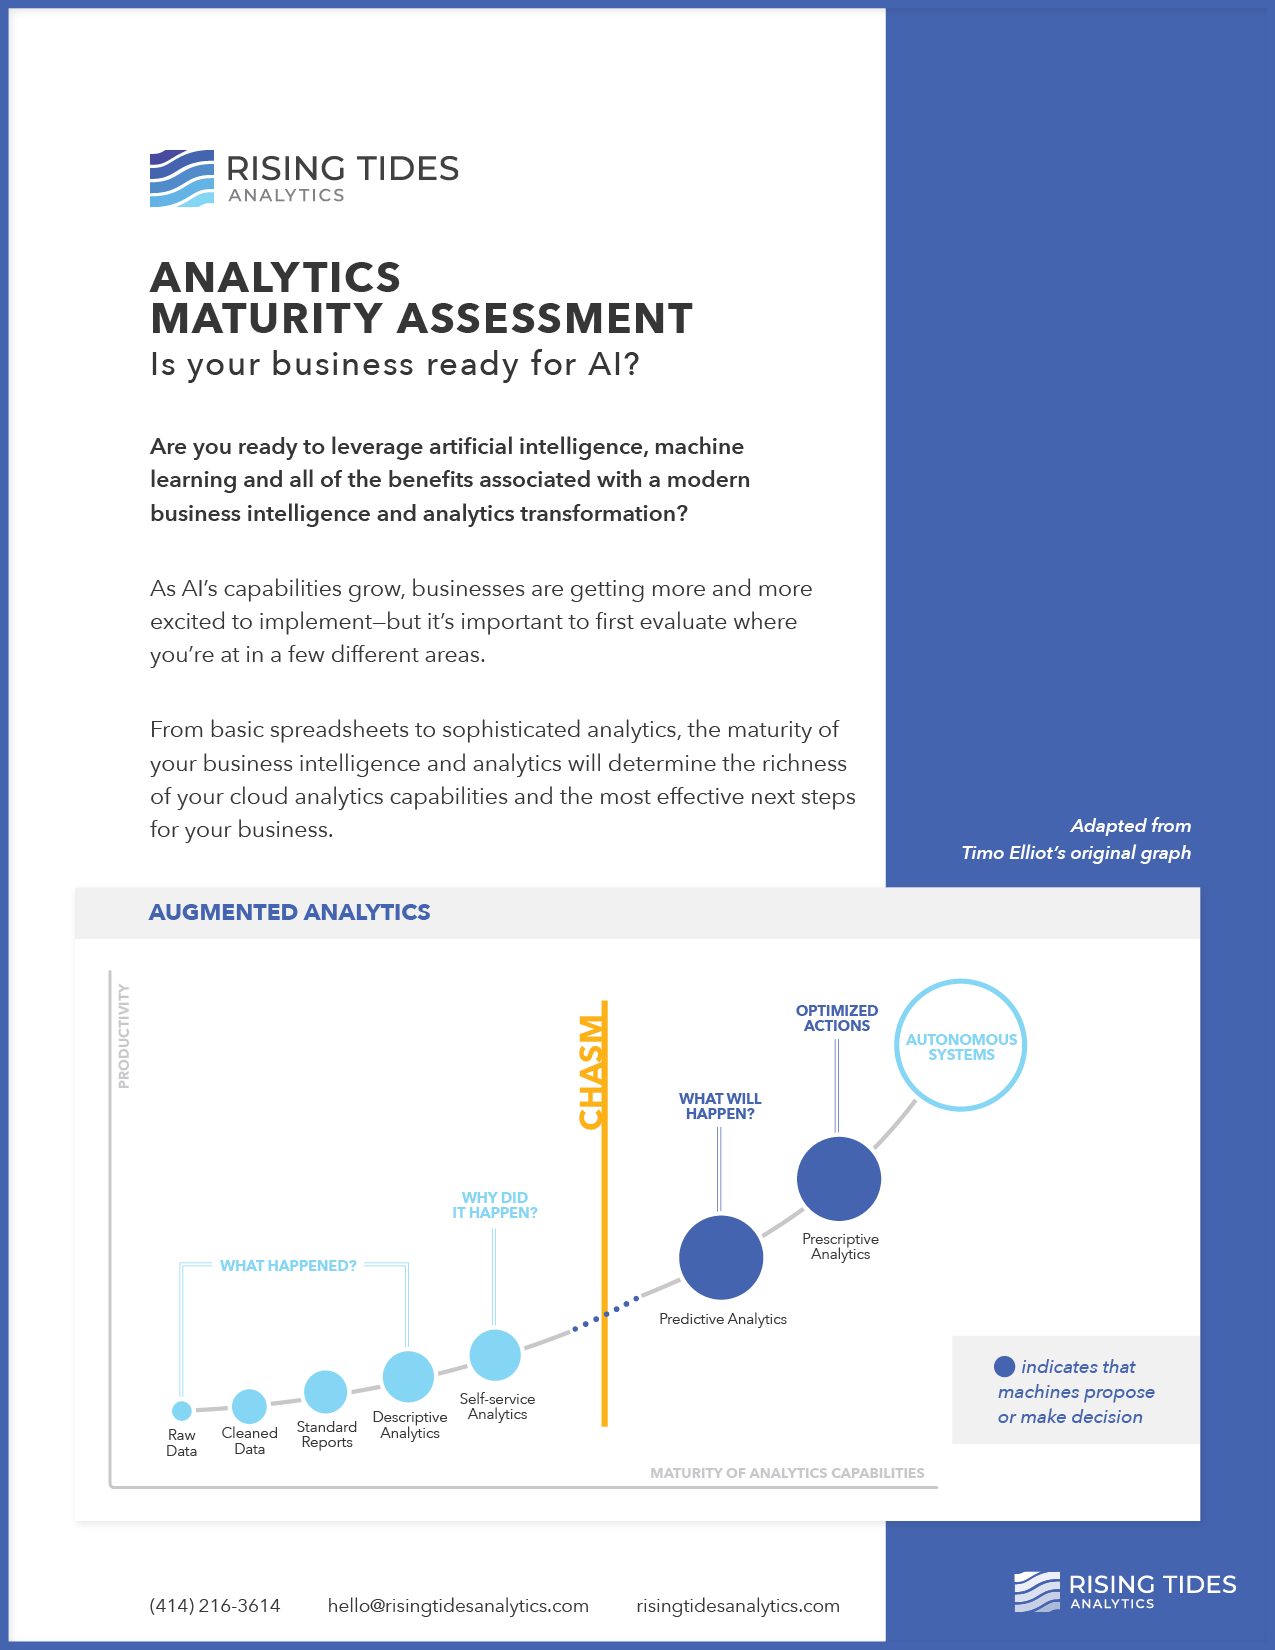 Analytics Maturity Assessment